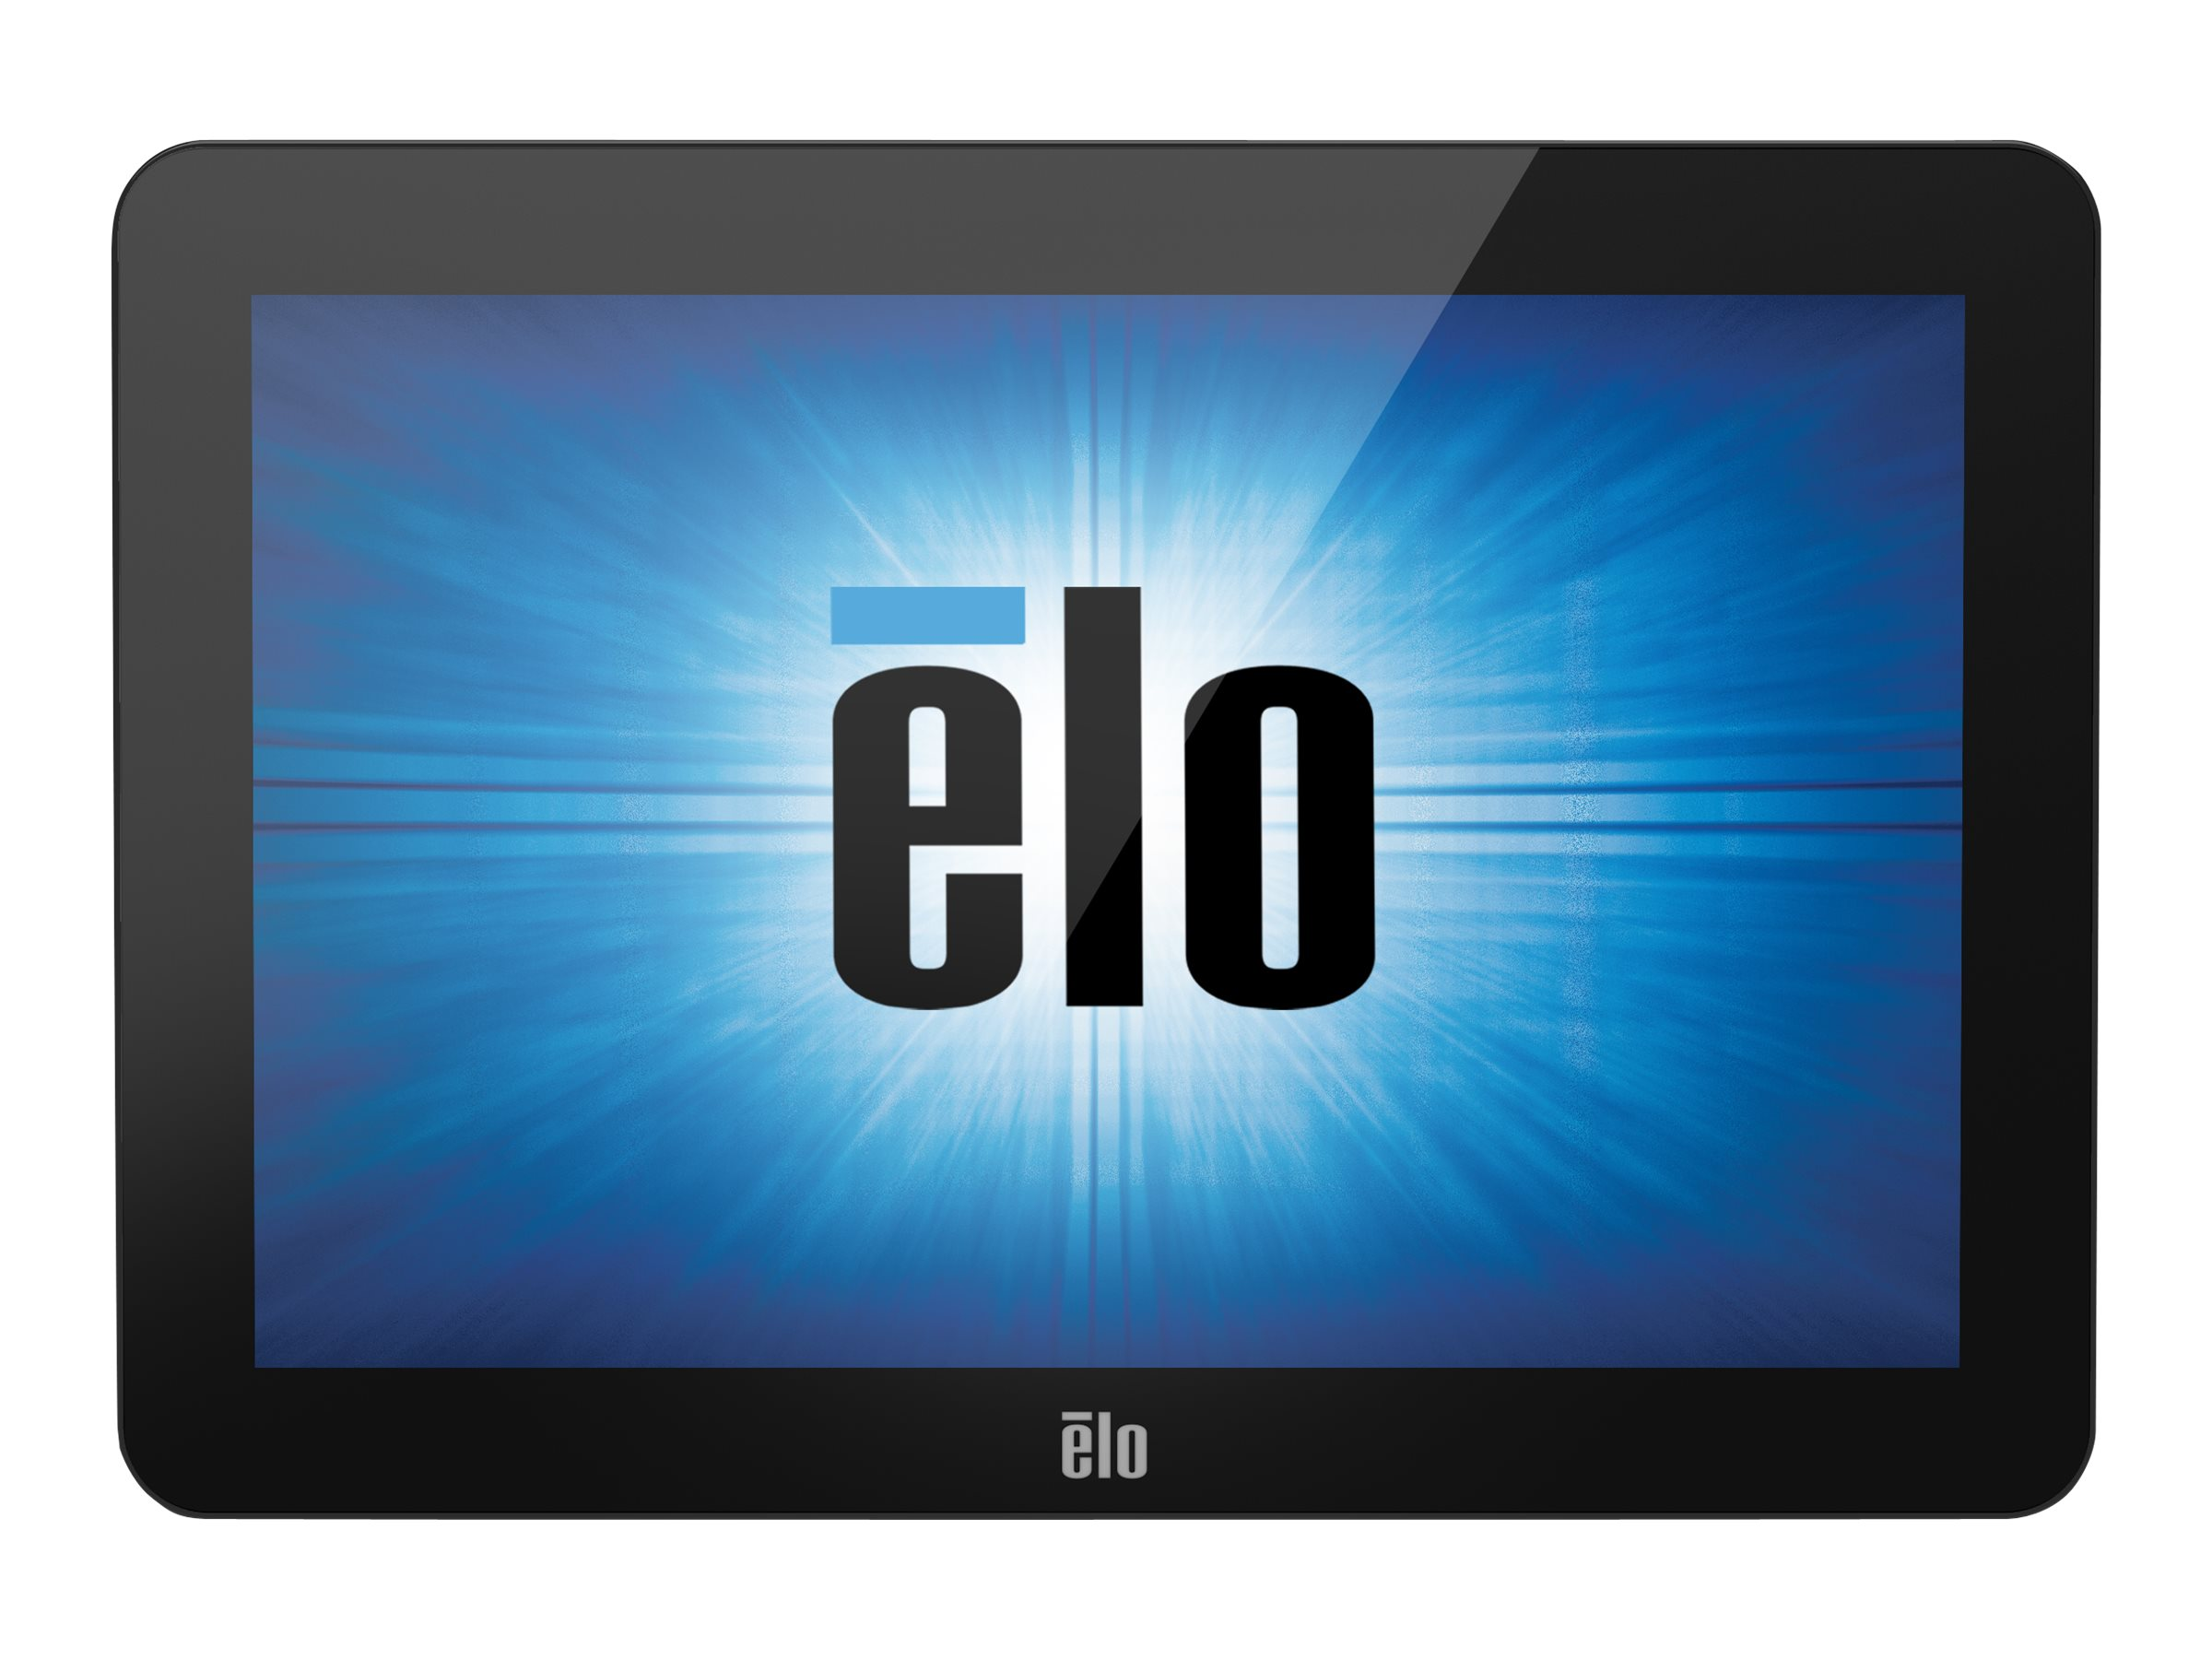 Elo M-Series 1002L Non-touch - LED-Monitor - 25.7 cm (10.1